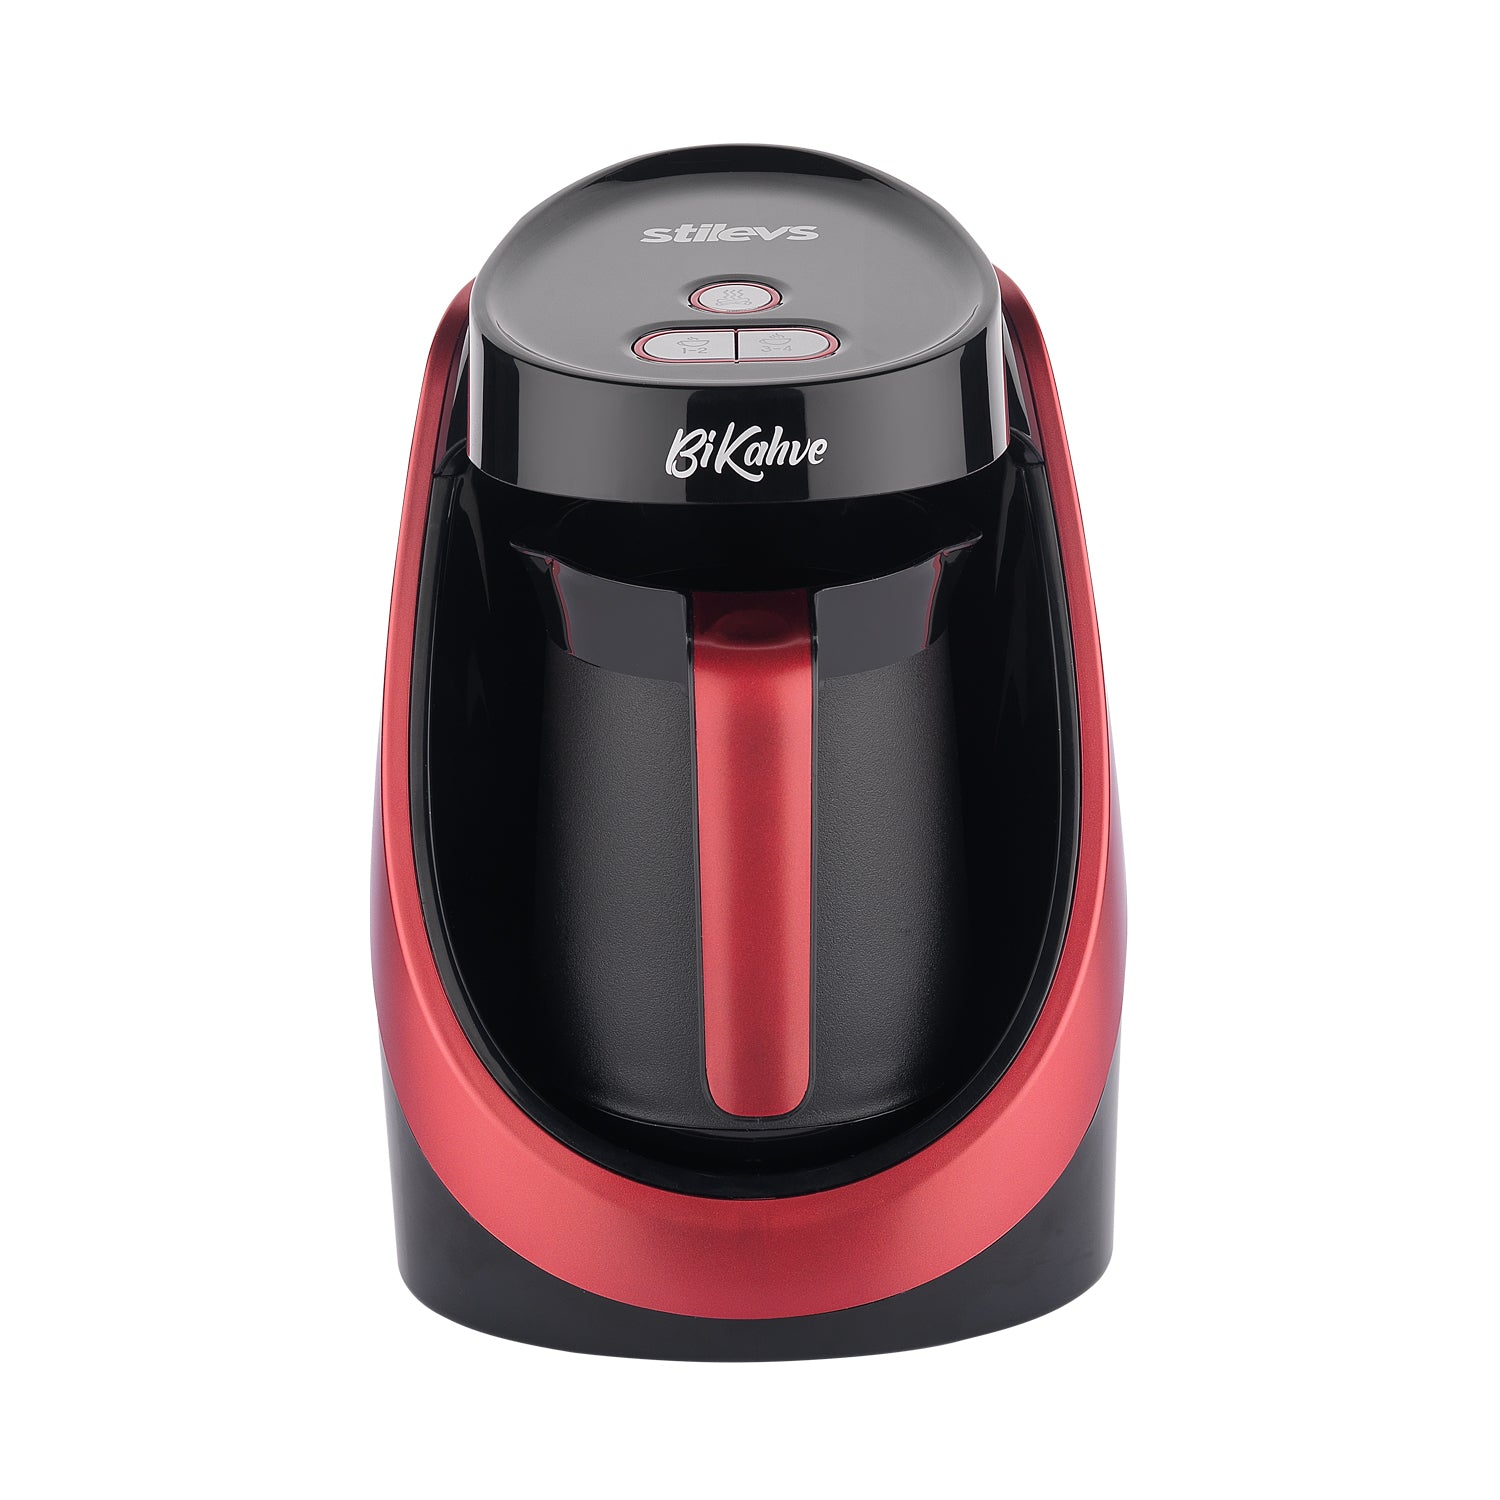 Stilevs Bikahve Automatic Turkish Coffee Machine - Cherry